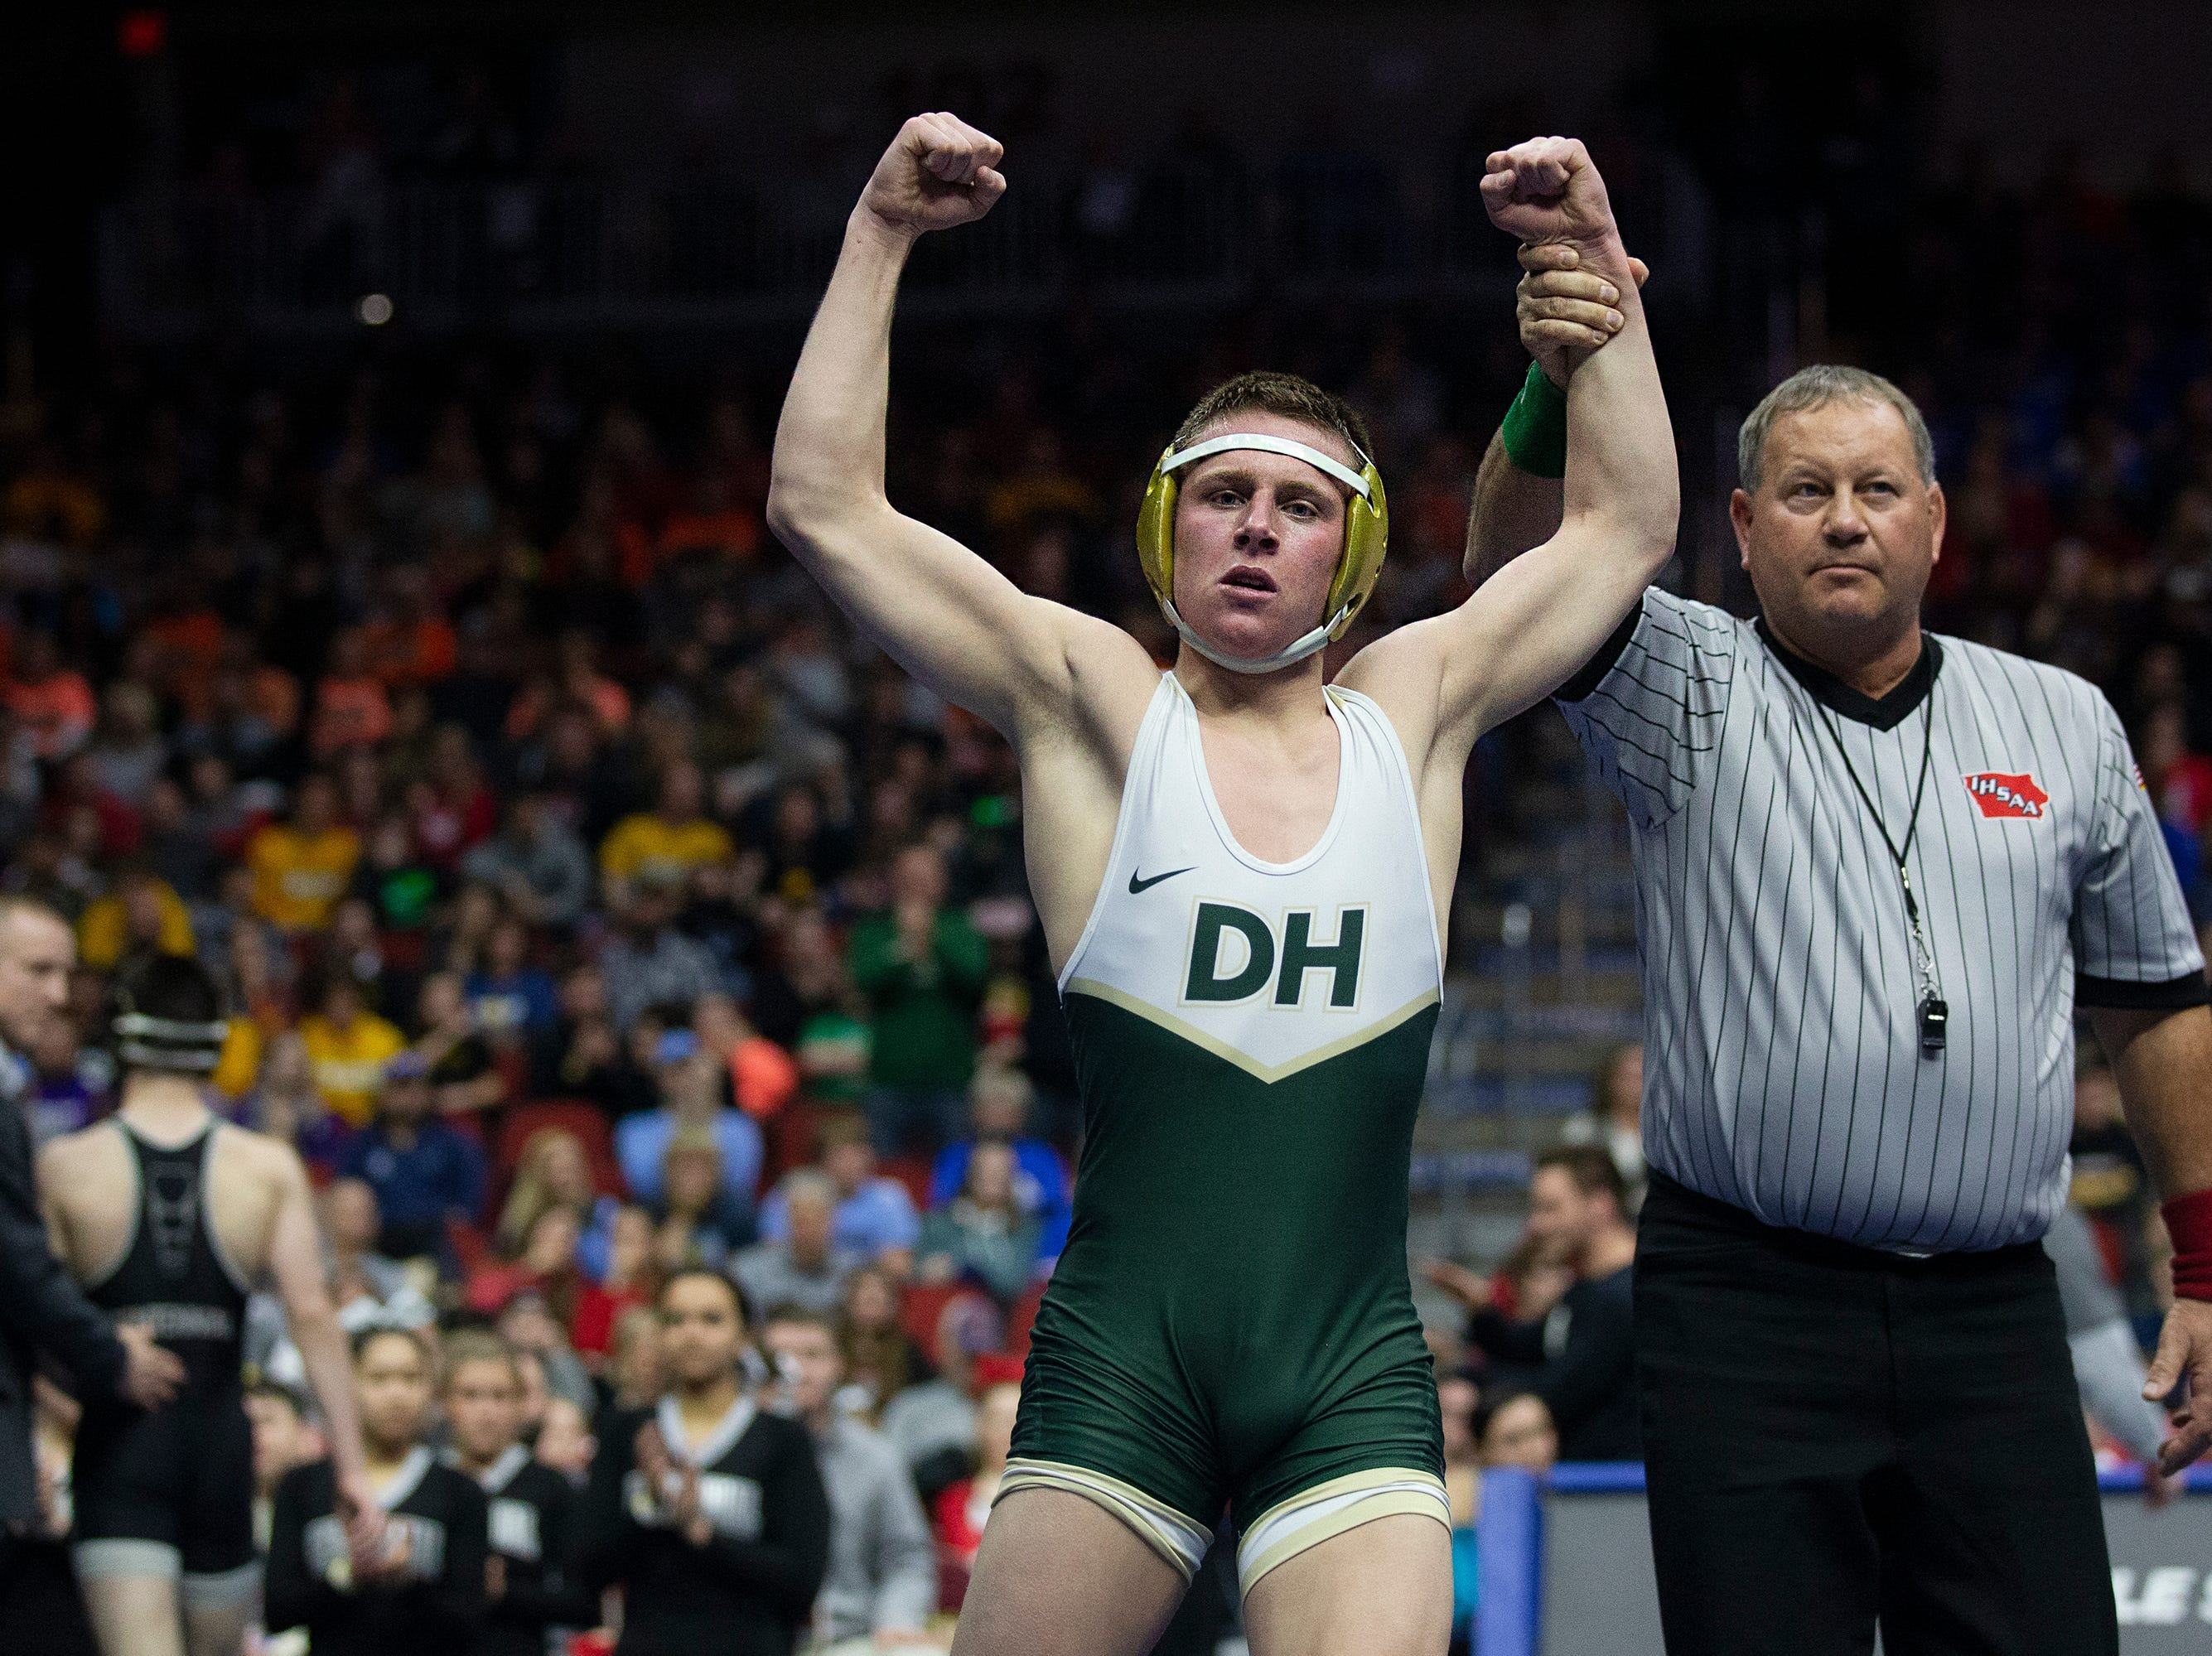 Dubuque Hempstead's Joe Pins wins the 132 pound Class 3A championship match against Ankeny Centennial's Ben Monroe during the Iowa high school state wrestling tournament on Saturday, Feb. 16, 2019, in Wells Fargo Arena.